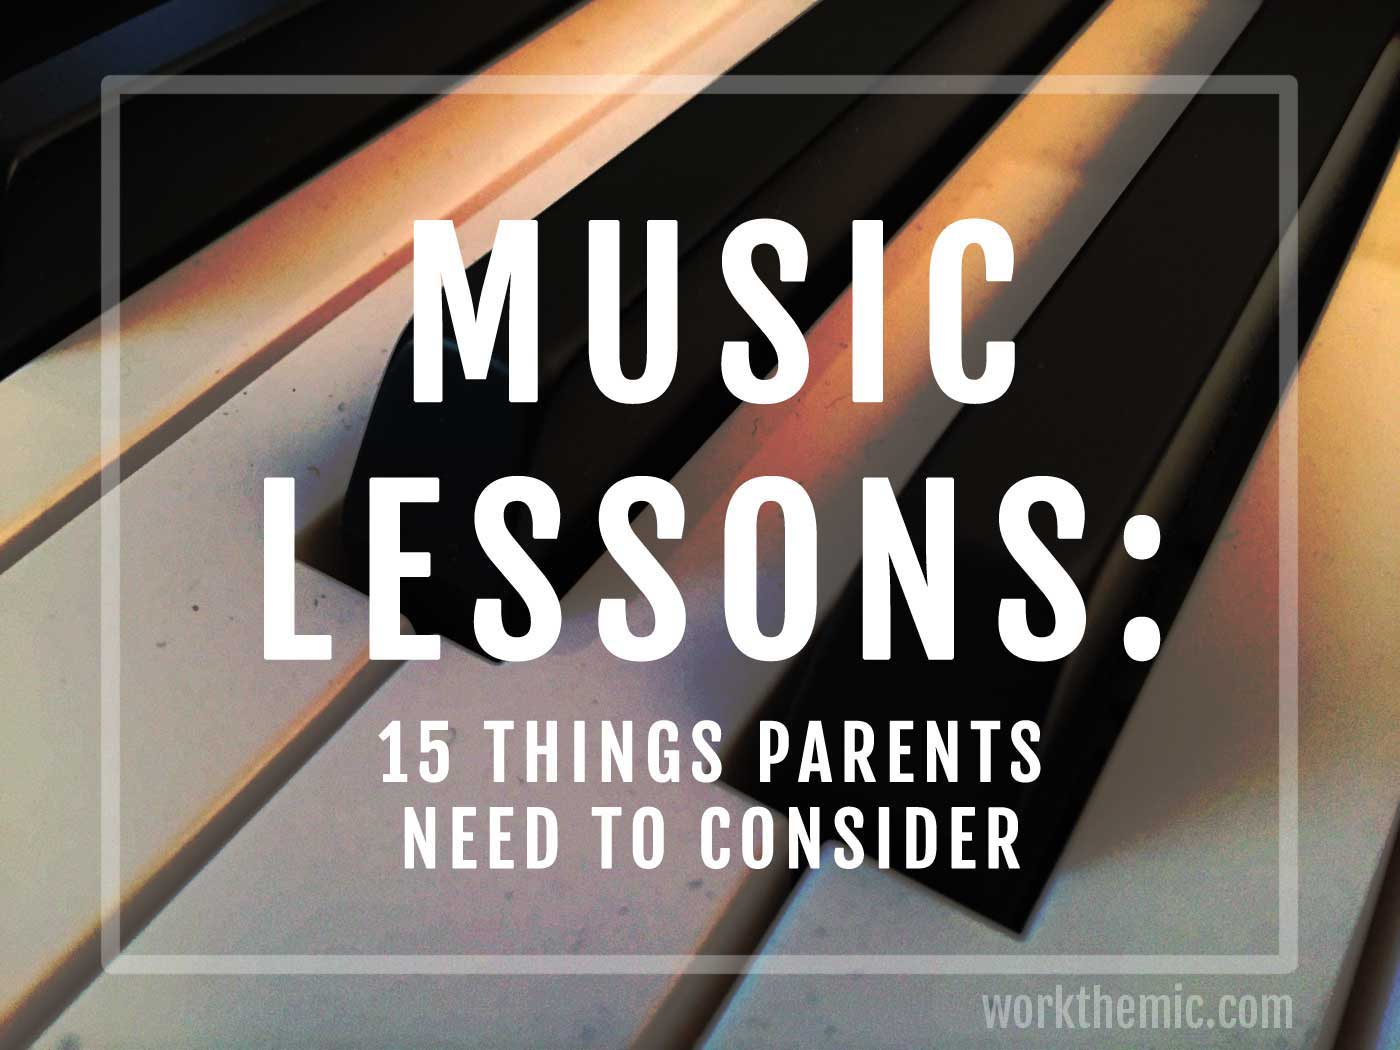 lessons: 15 things parents need to consider